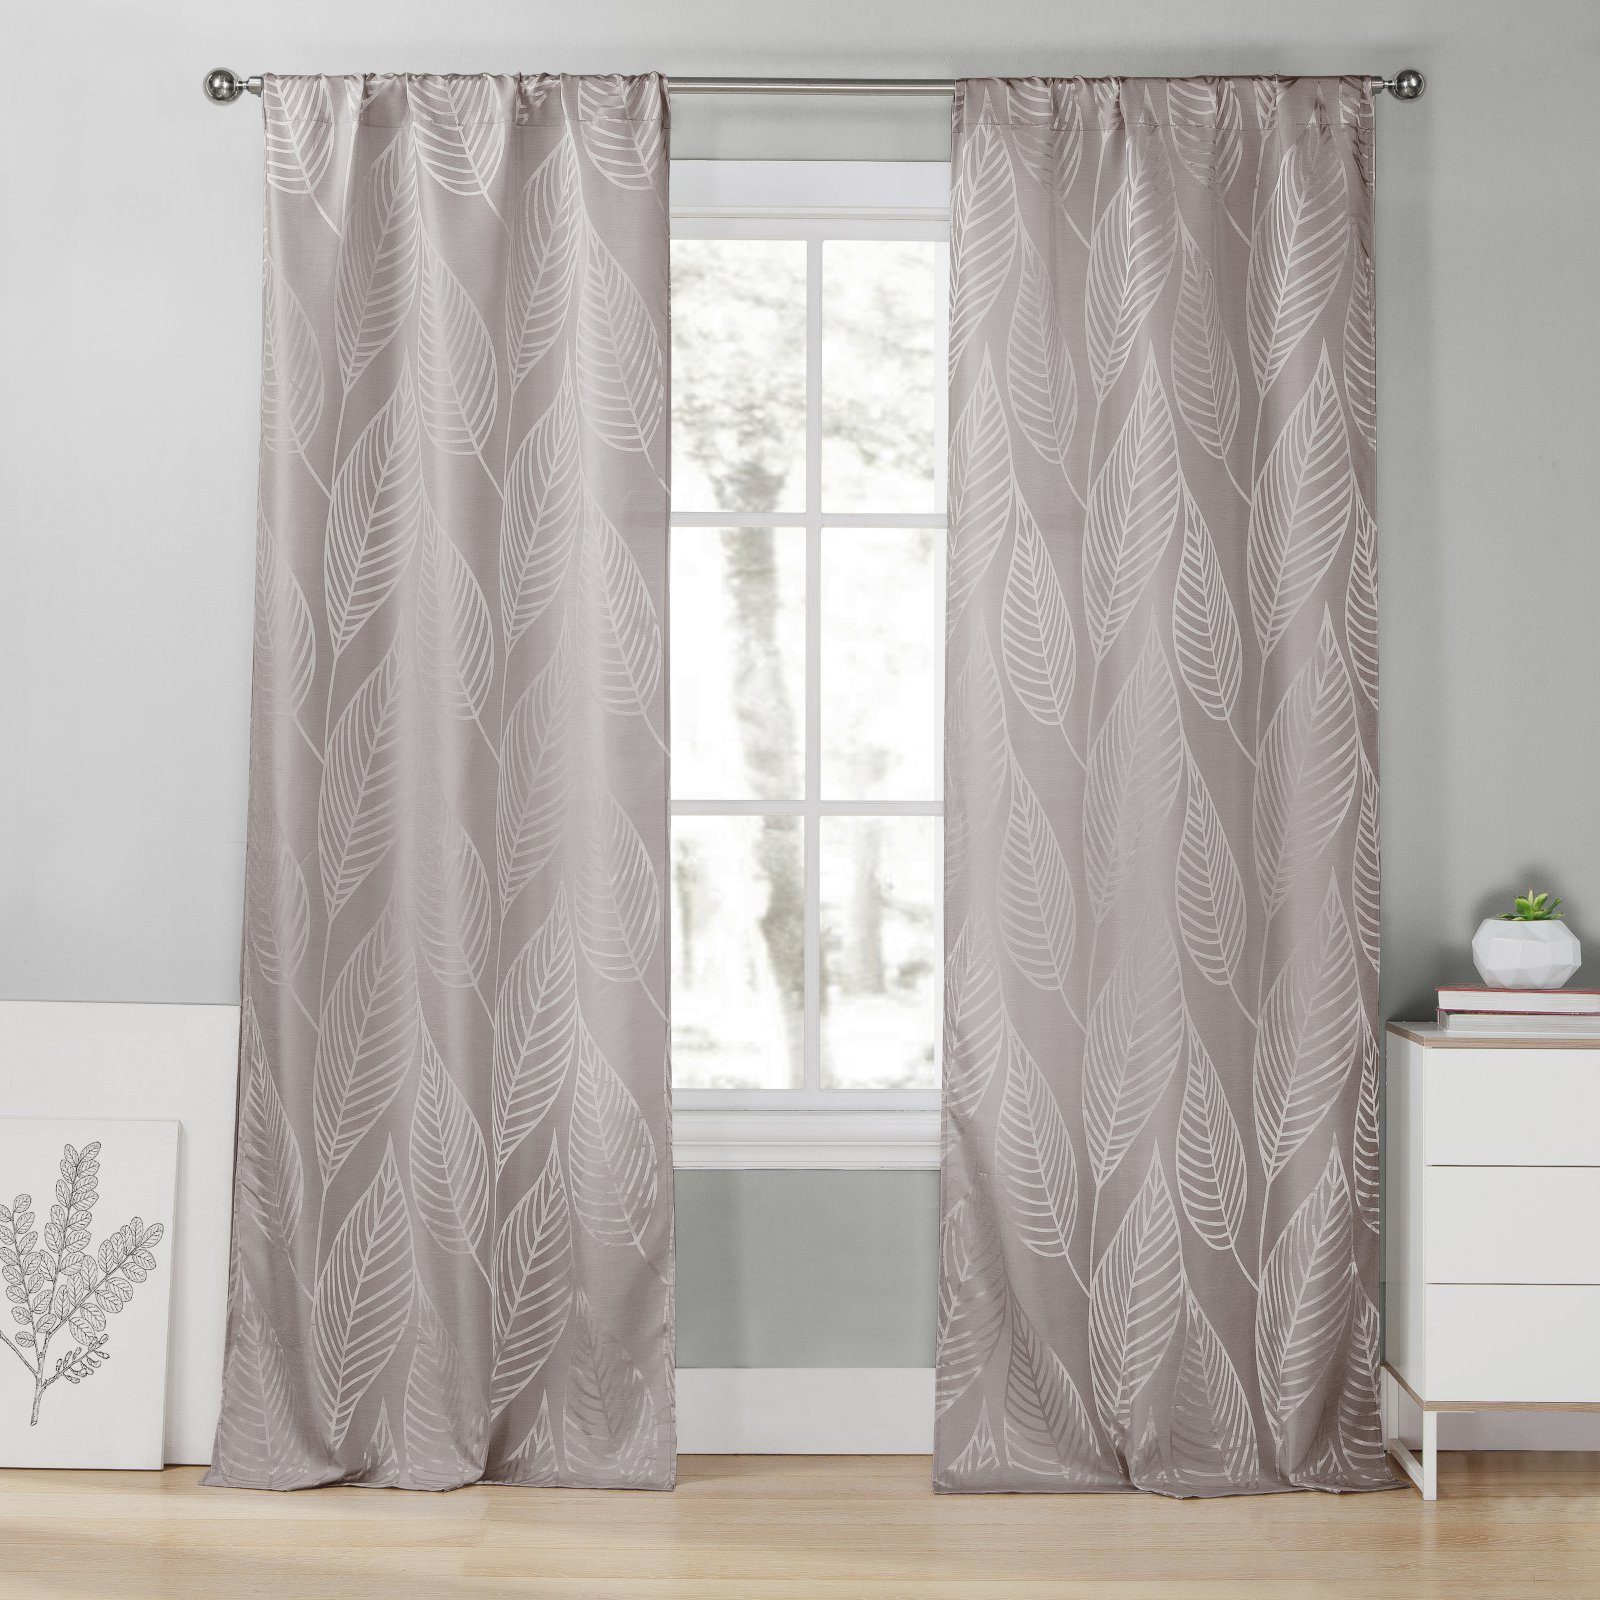 Duck River Leah Pole Top Curtain Panel Pair Steel Gray In Inside Leah Room Darkening Curtain Panel Pairs (View 18 of 20)